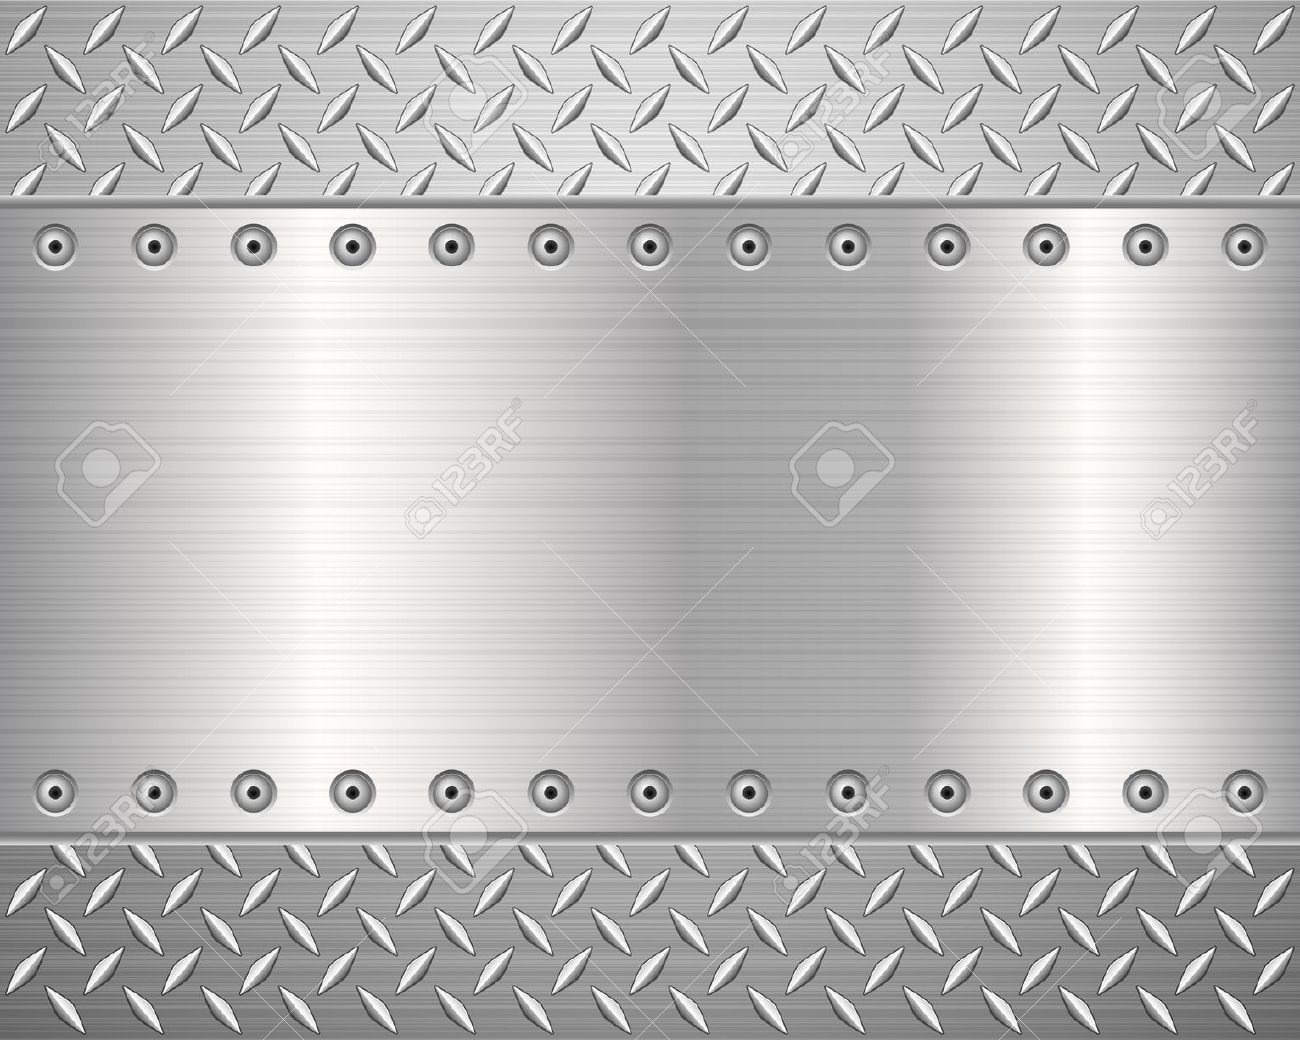 Metal background clipart.